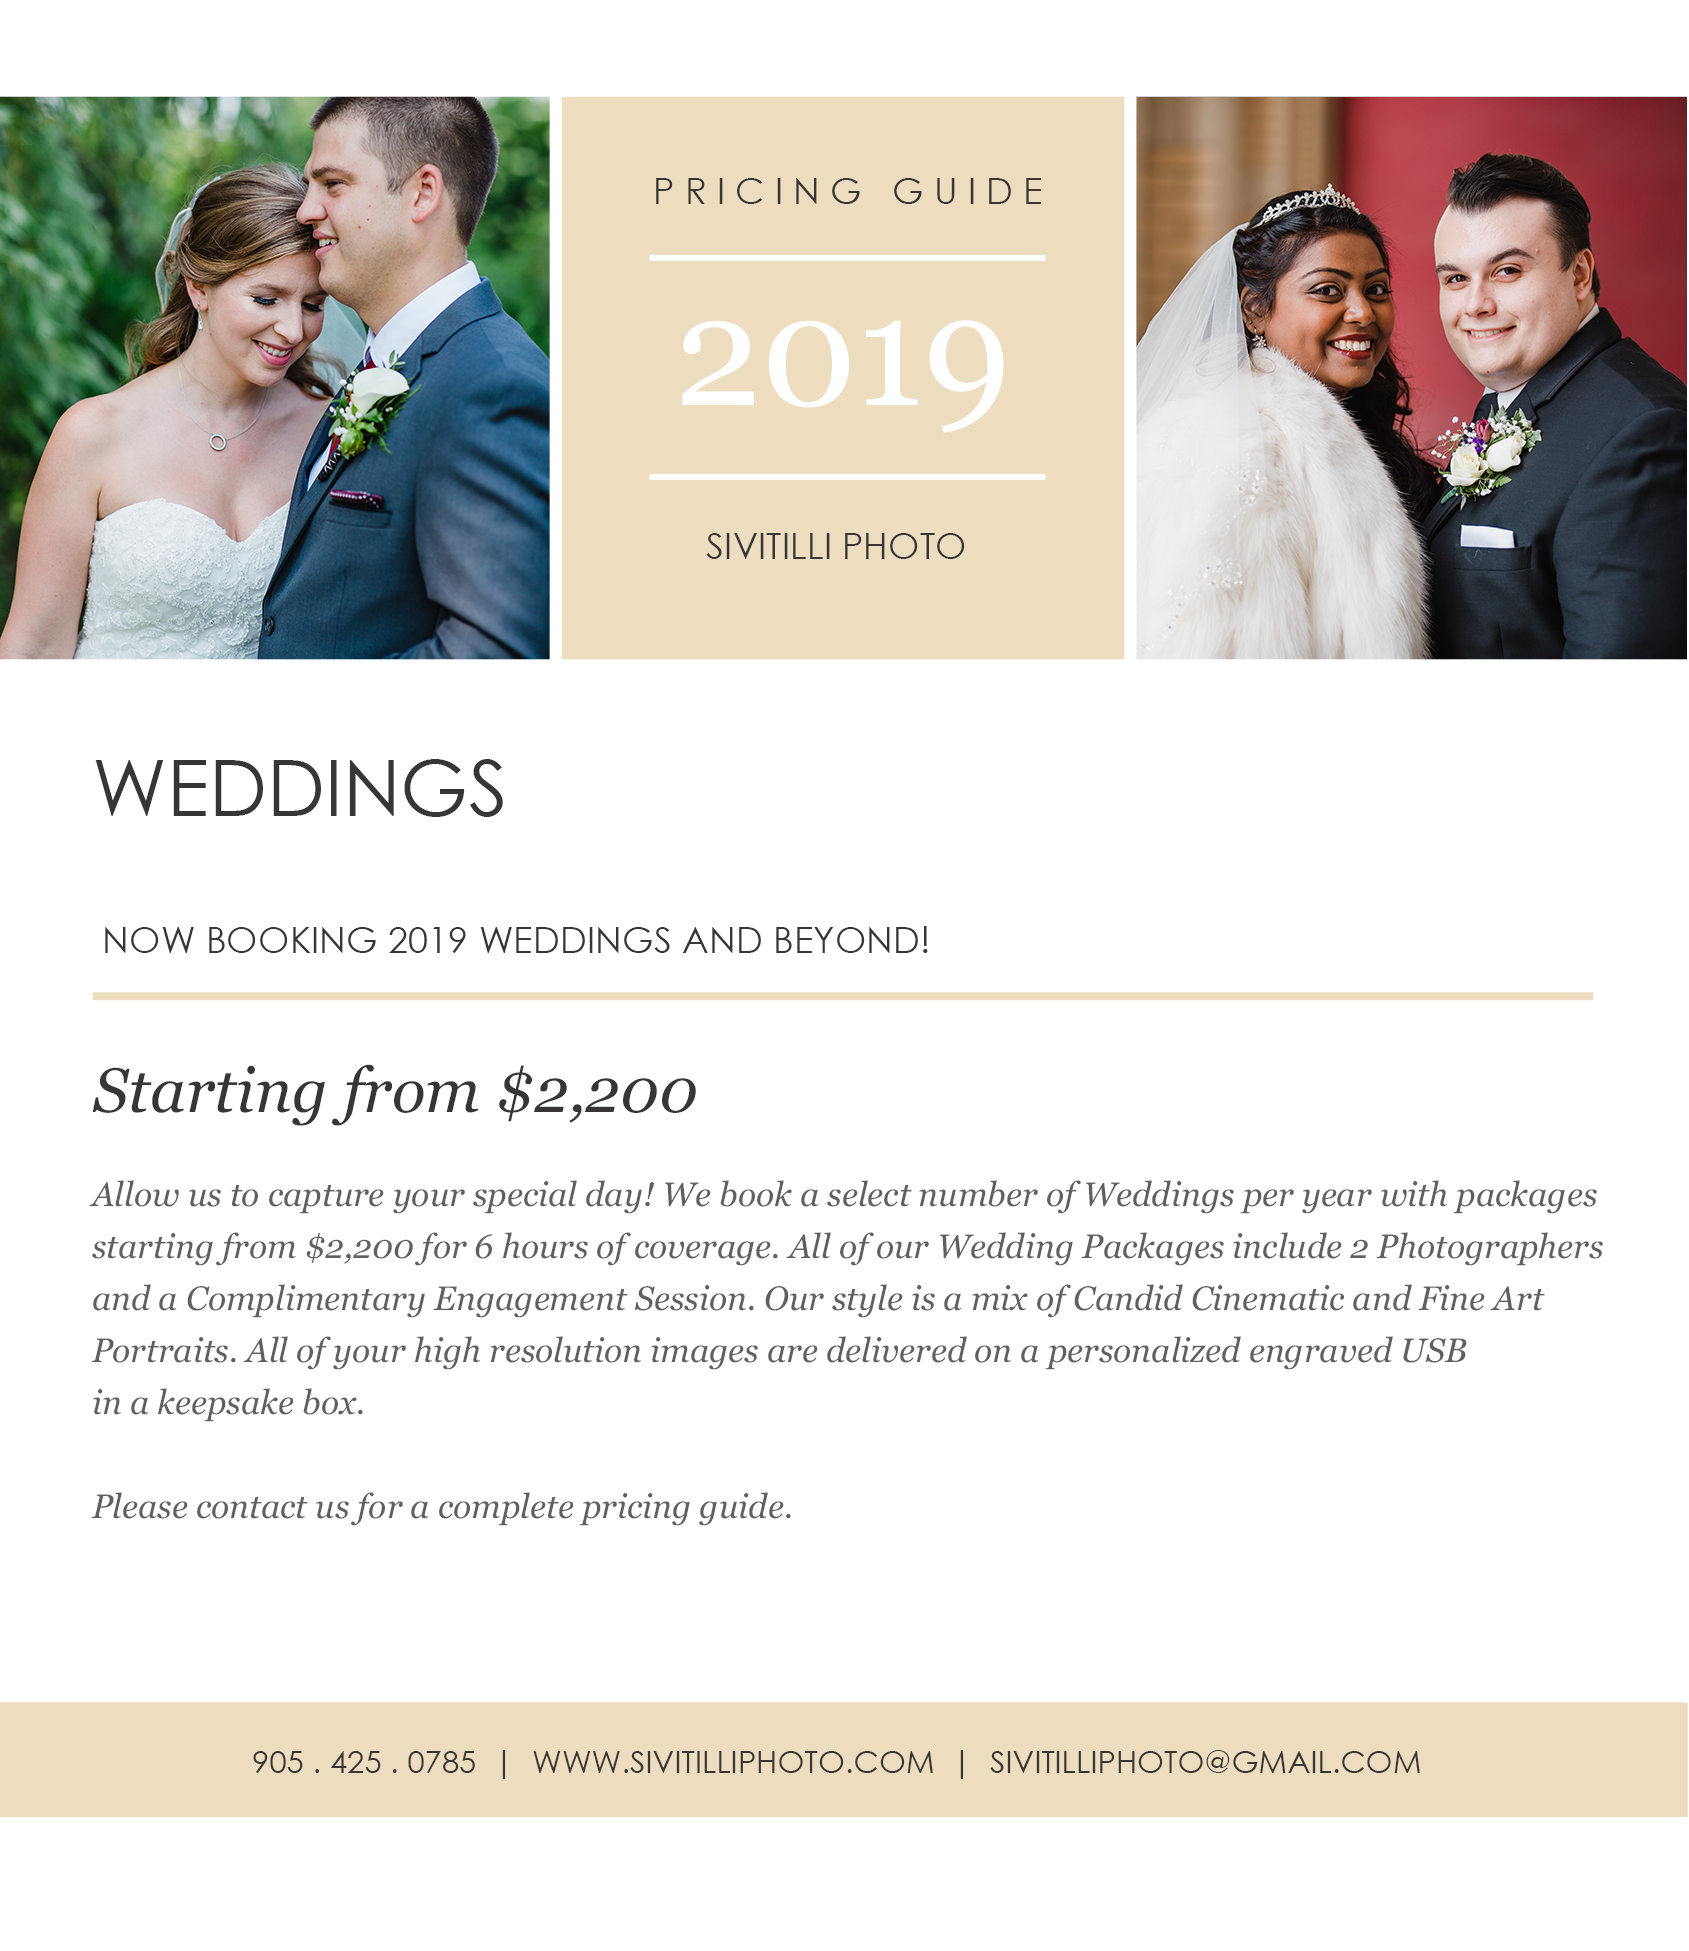 Sivitilli Photo Web Pricing Weddings 2019.jpg